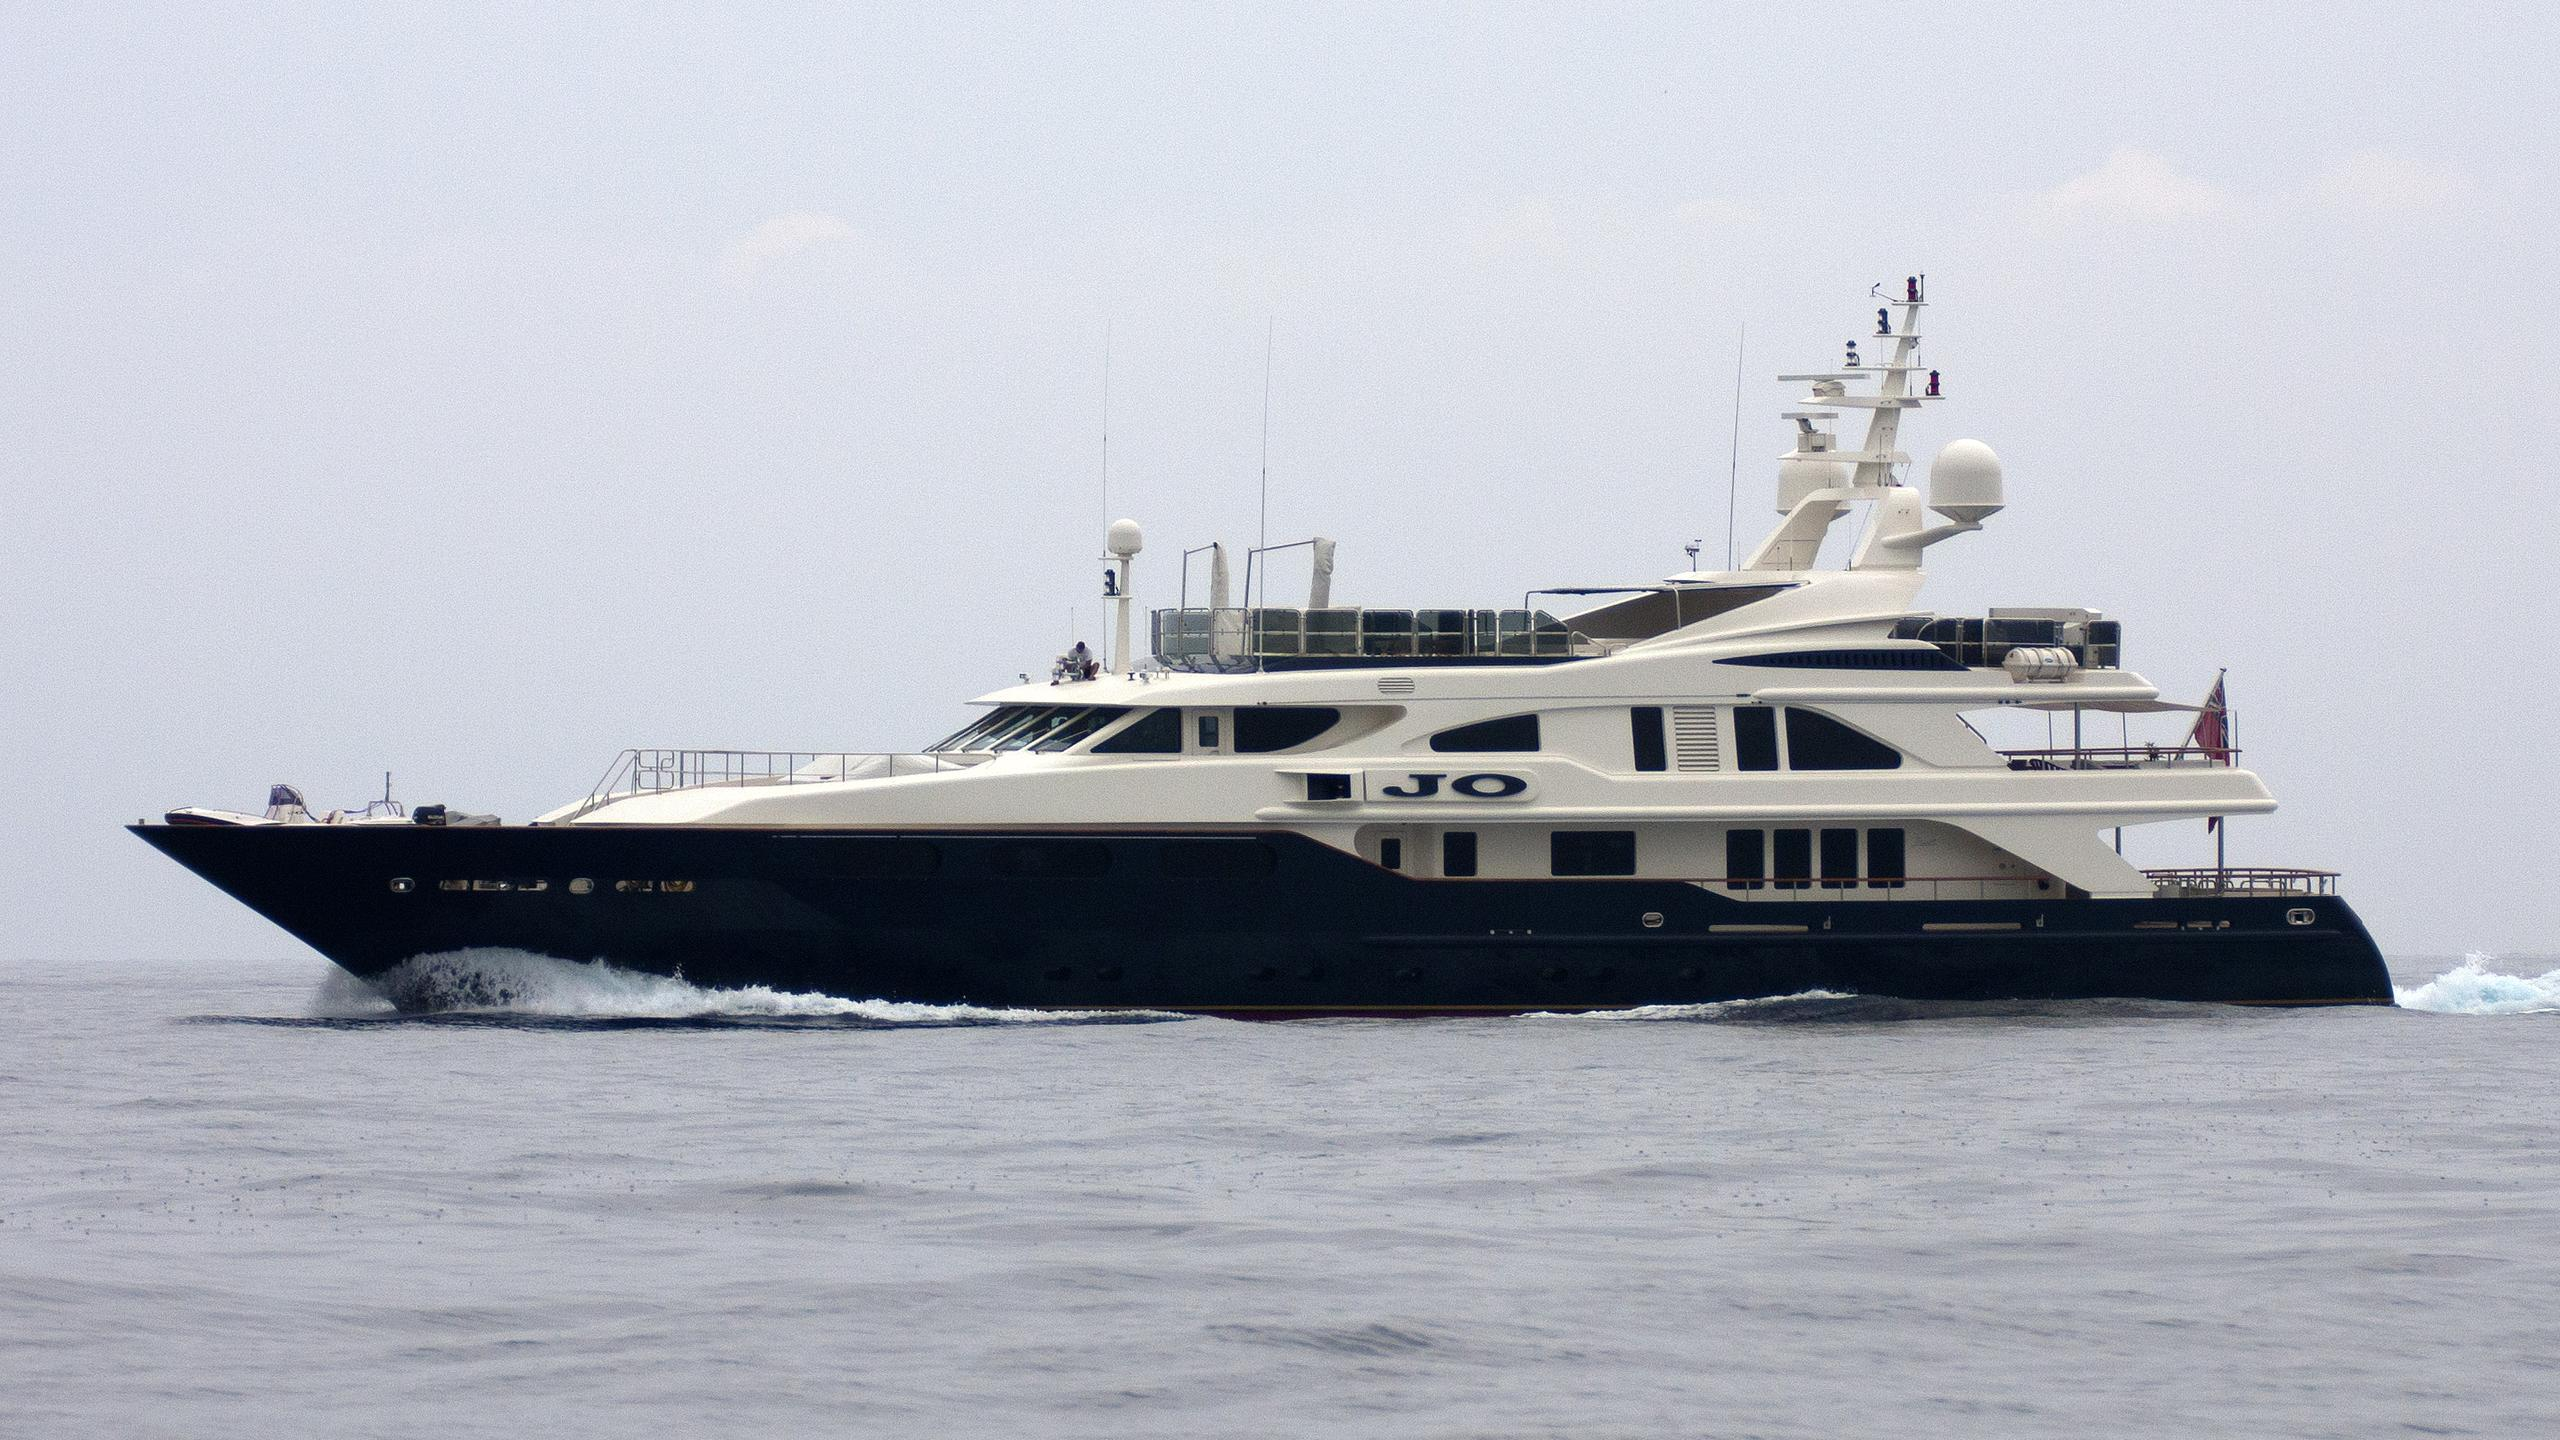 jo-motor-yacht-benetti-golden-bay-2004-50m-profile